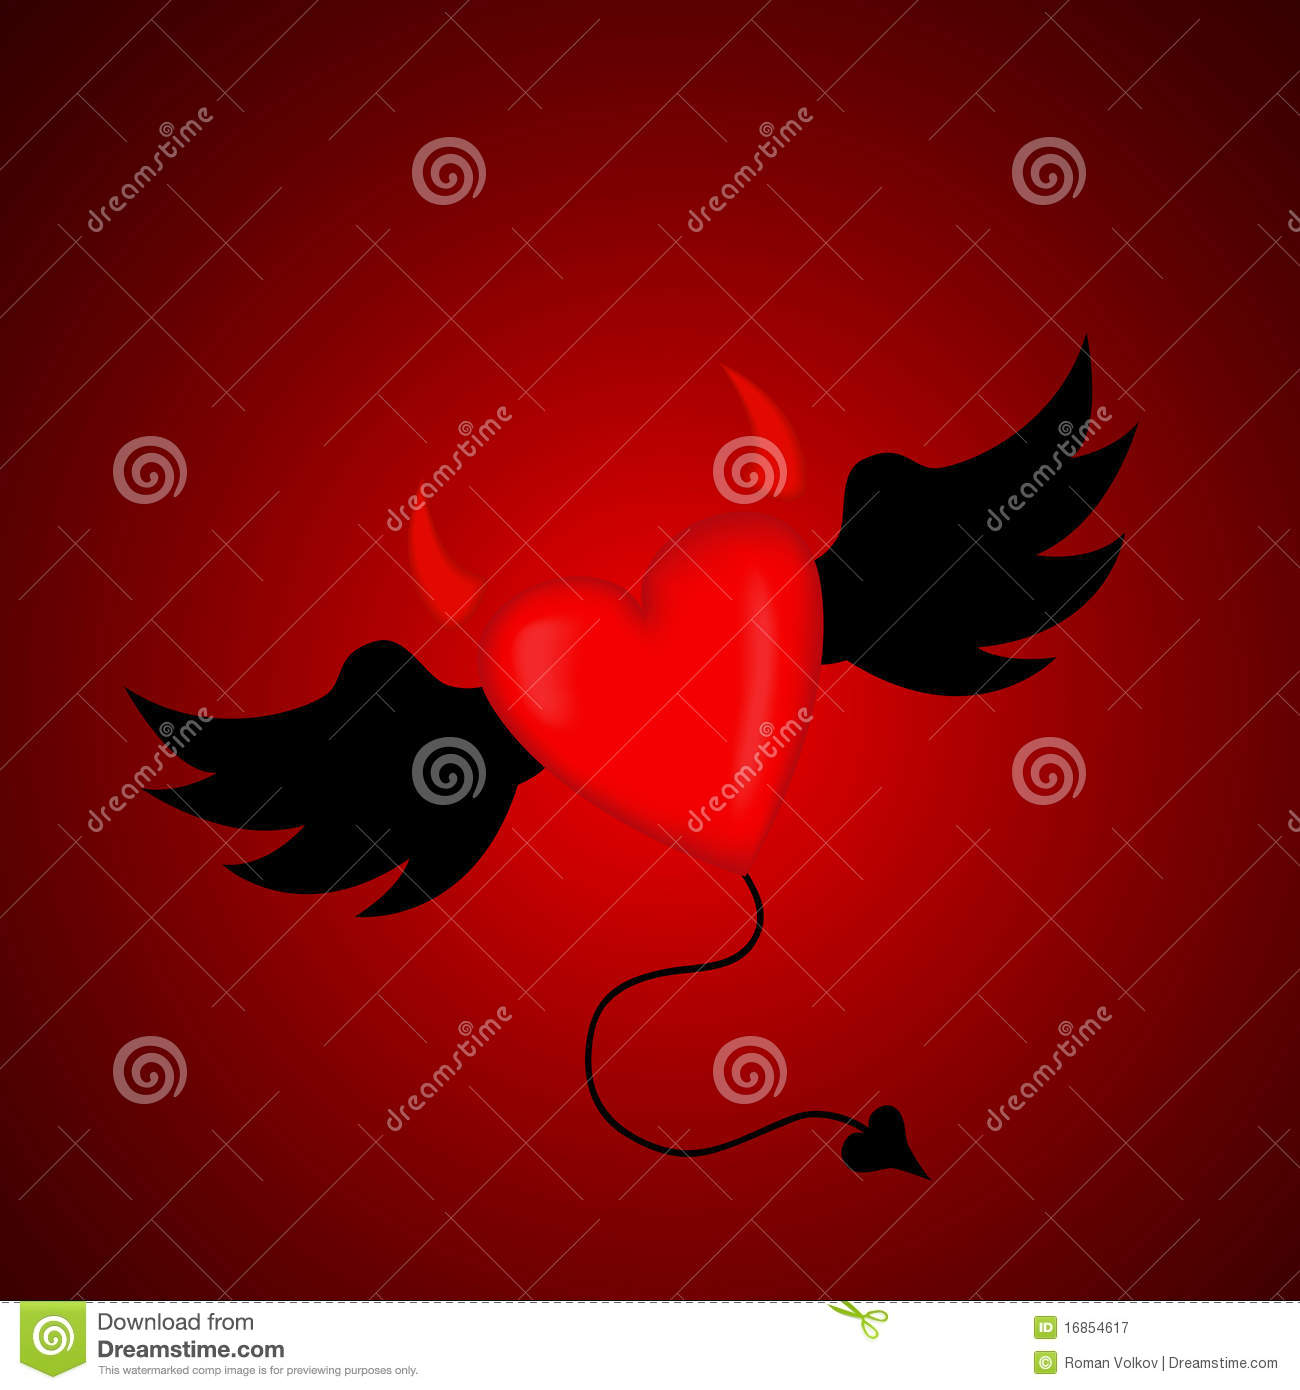 Evil Heart Photos http://www.dreamstime.com/royalty-free-stock-photography-evil-horned-heart-image16854617